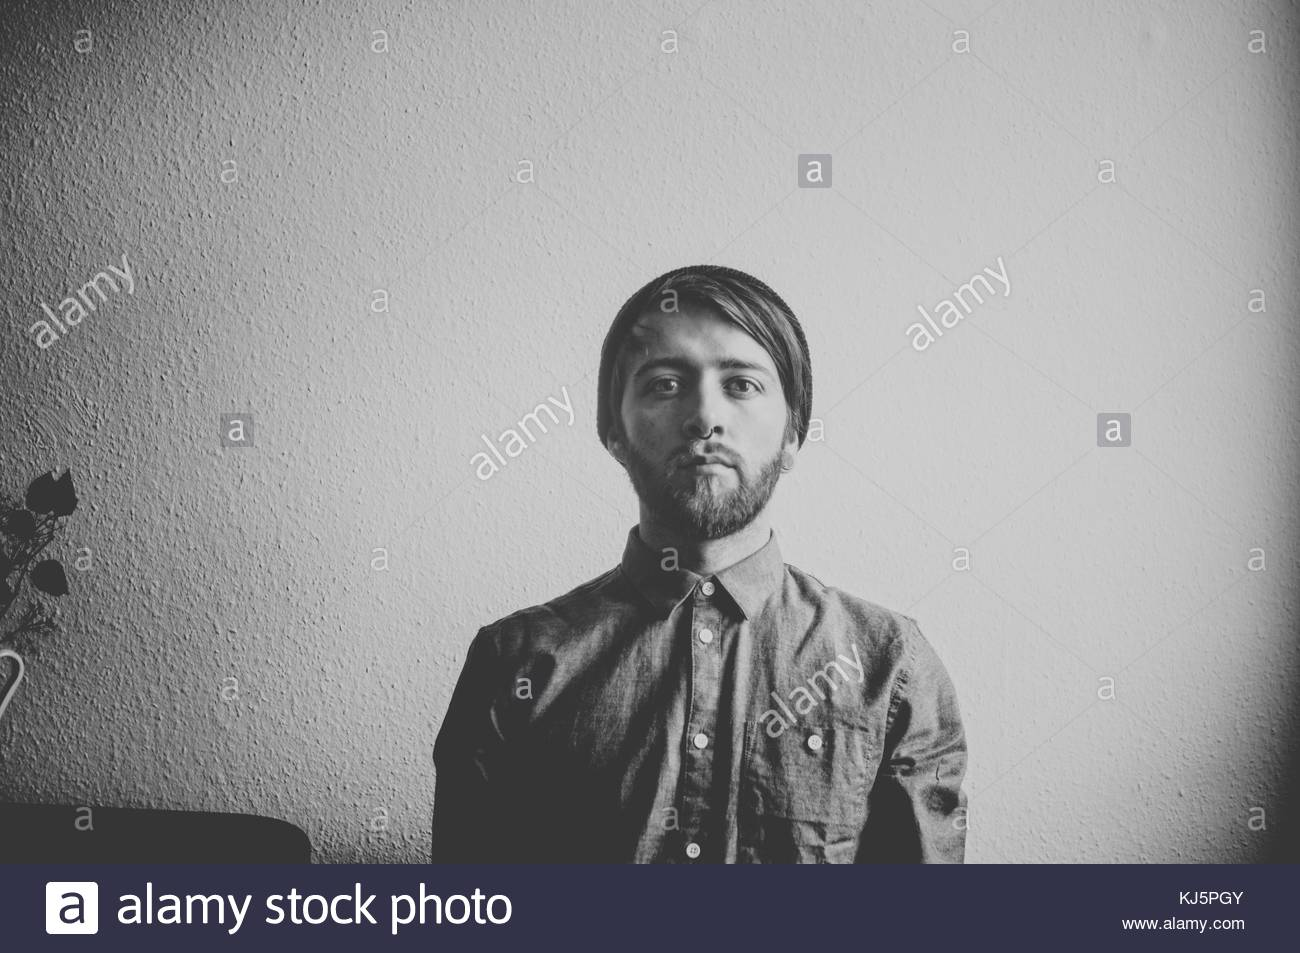 Portrait of young man in shirt - Stock Image